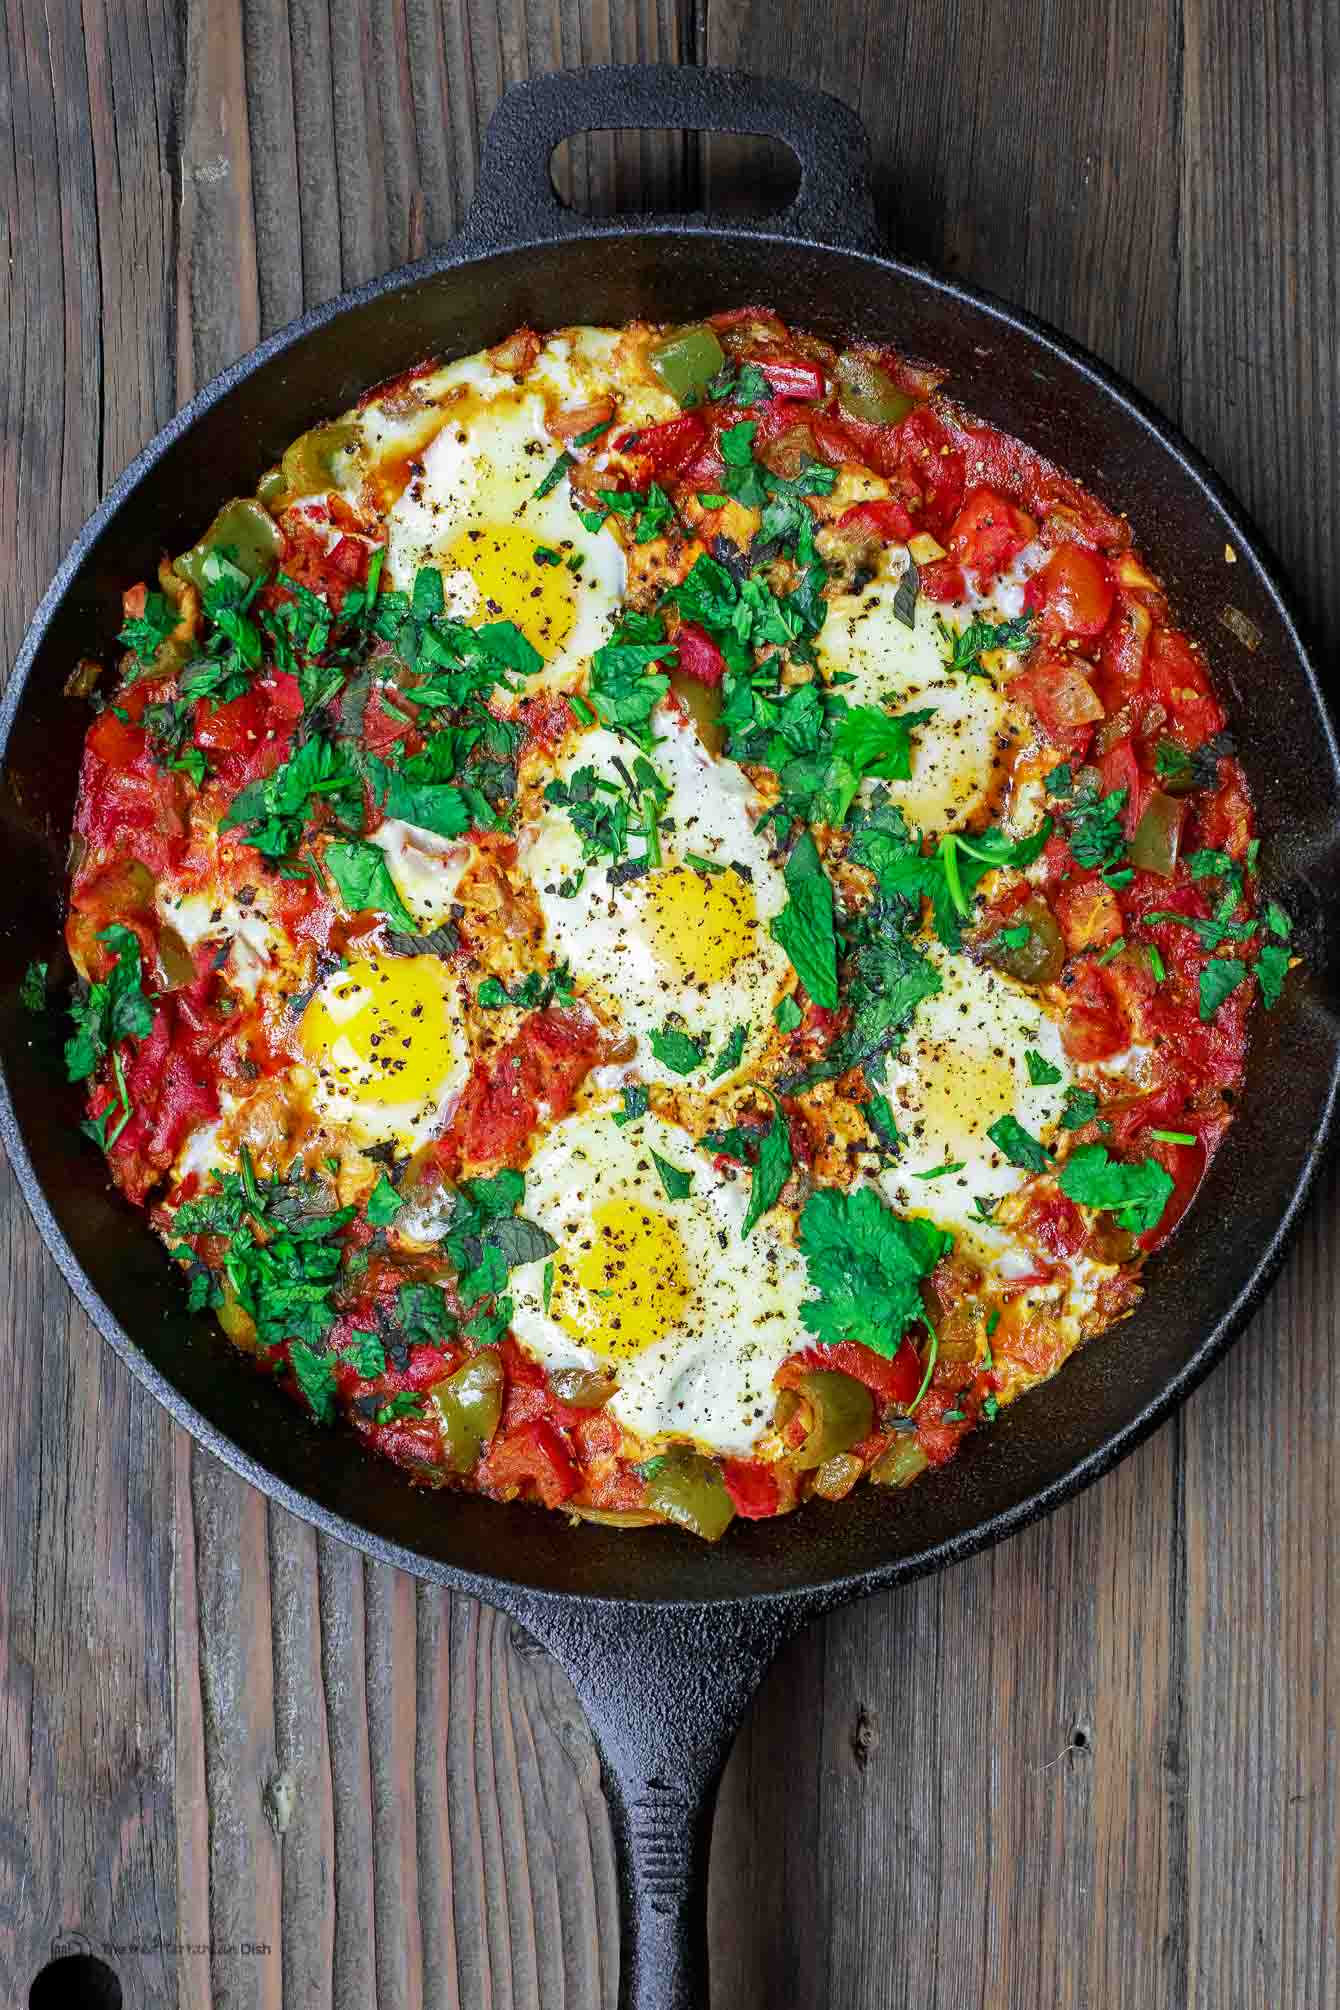 Shakshuka. Eggs poached in a tomato and bell pepper stew